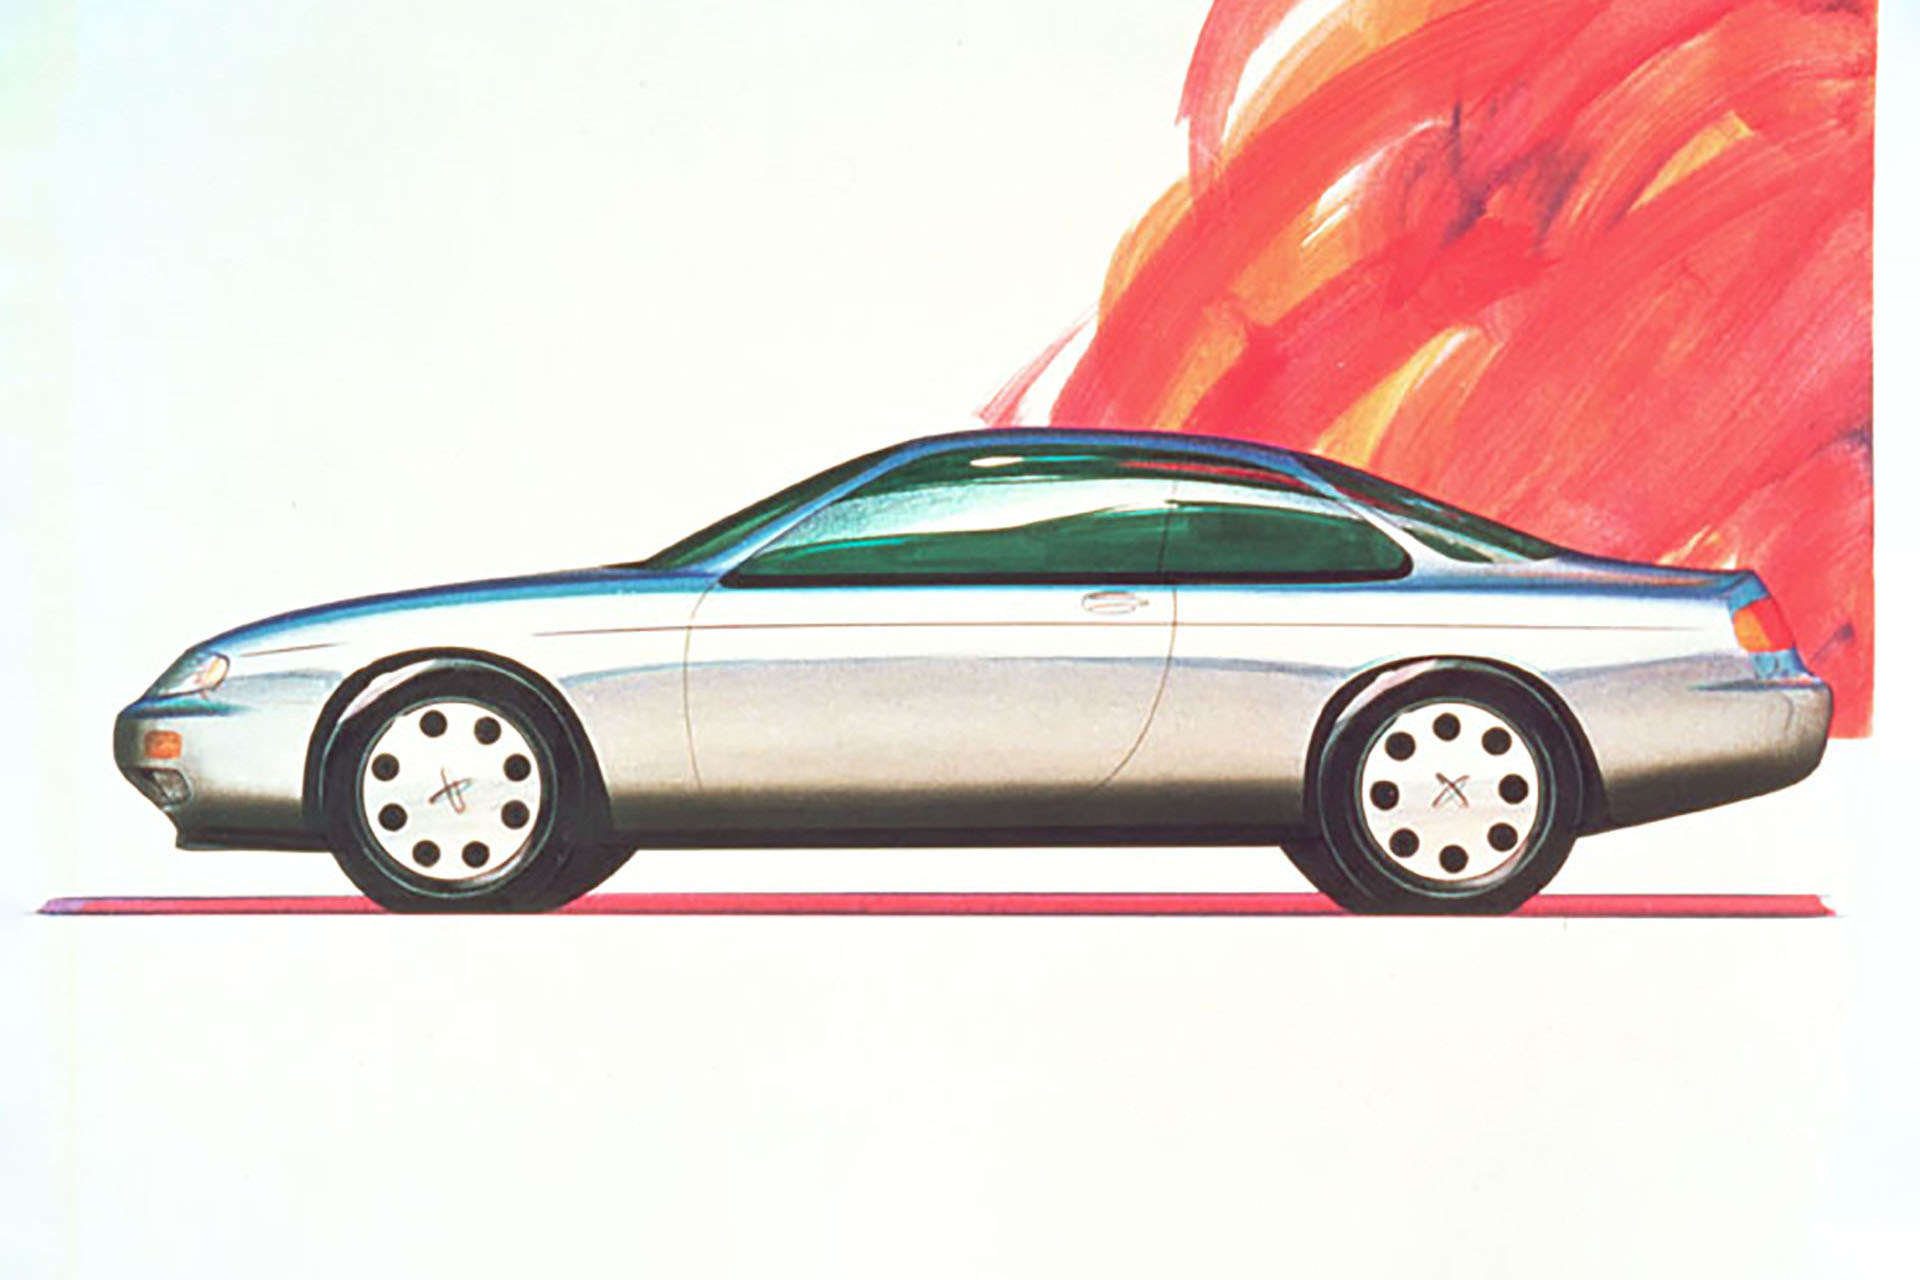 Nissan concept drawing